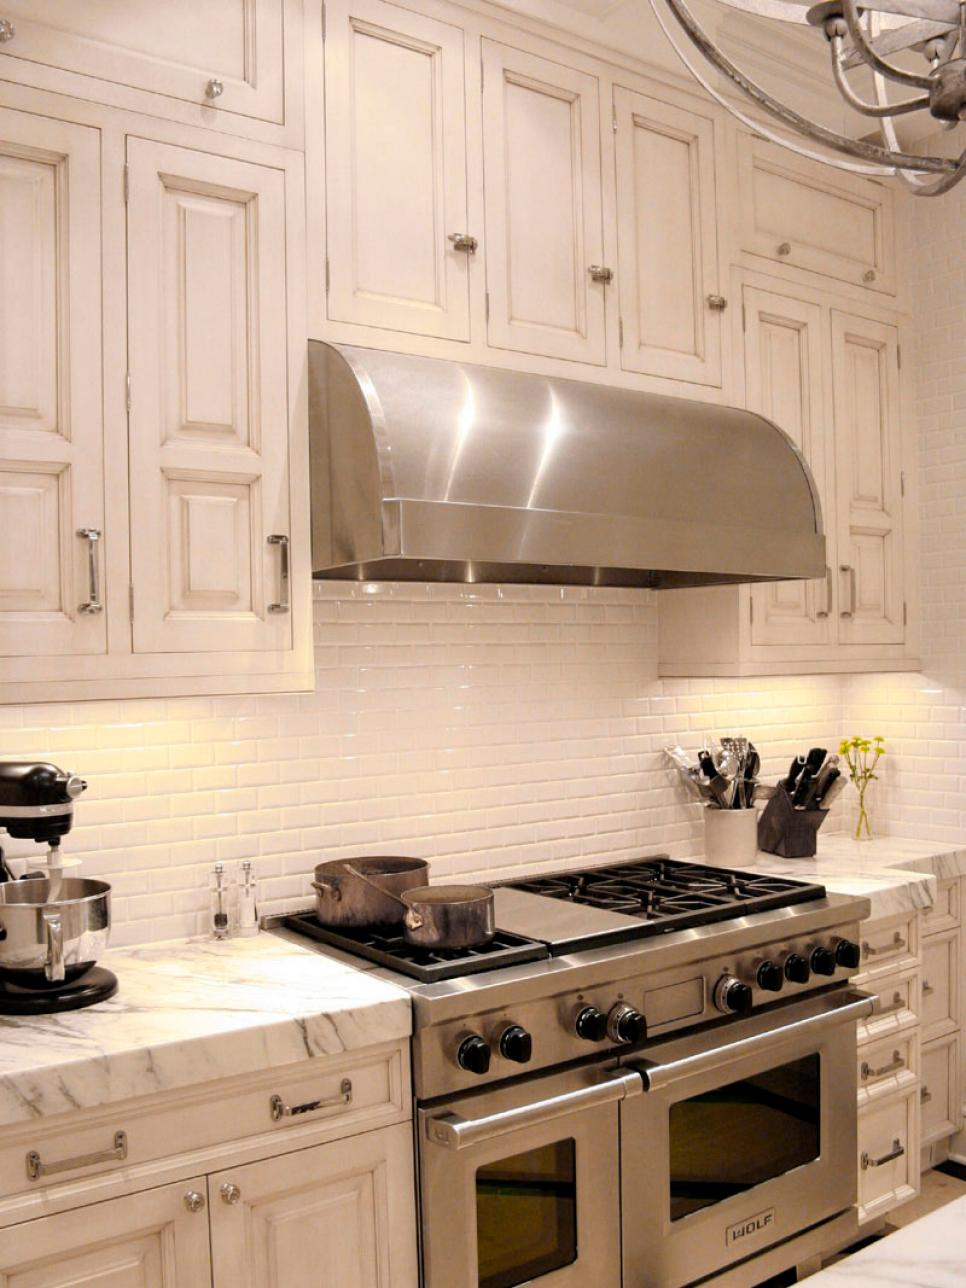 stylish kitchen hood treatments | hgtv